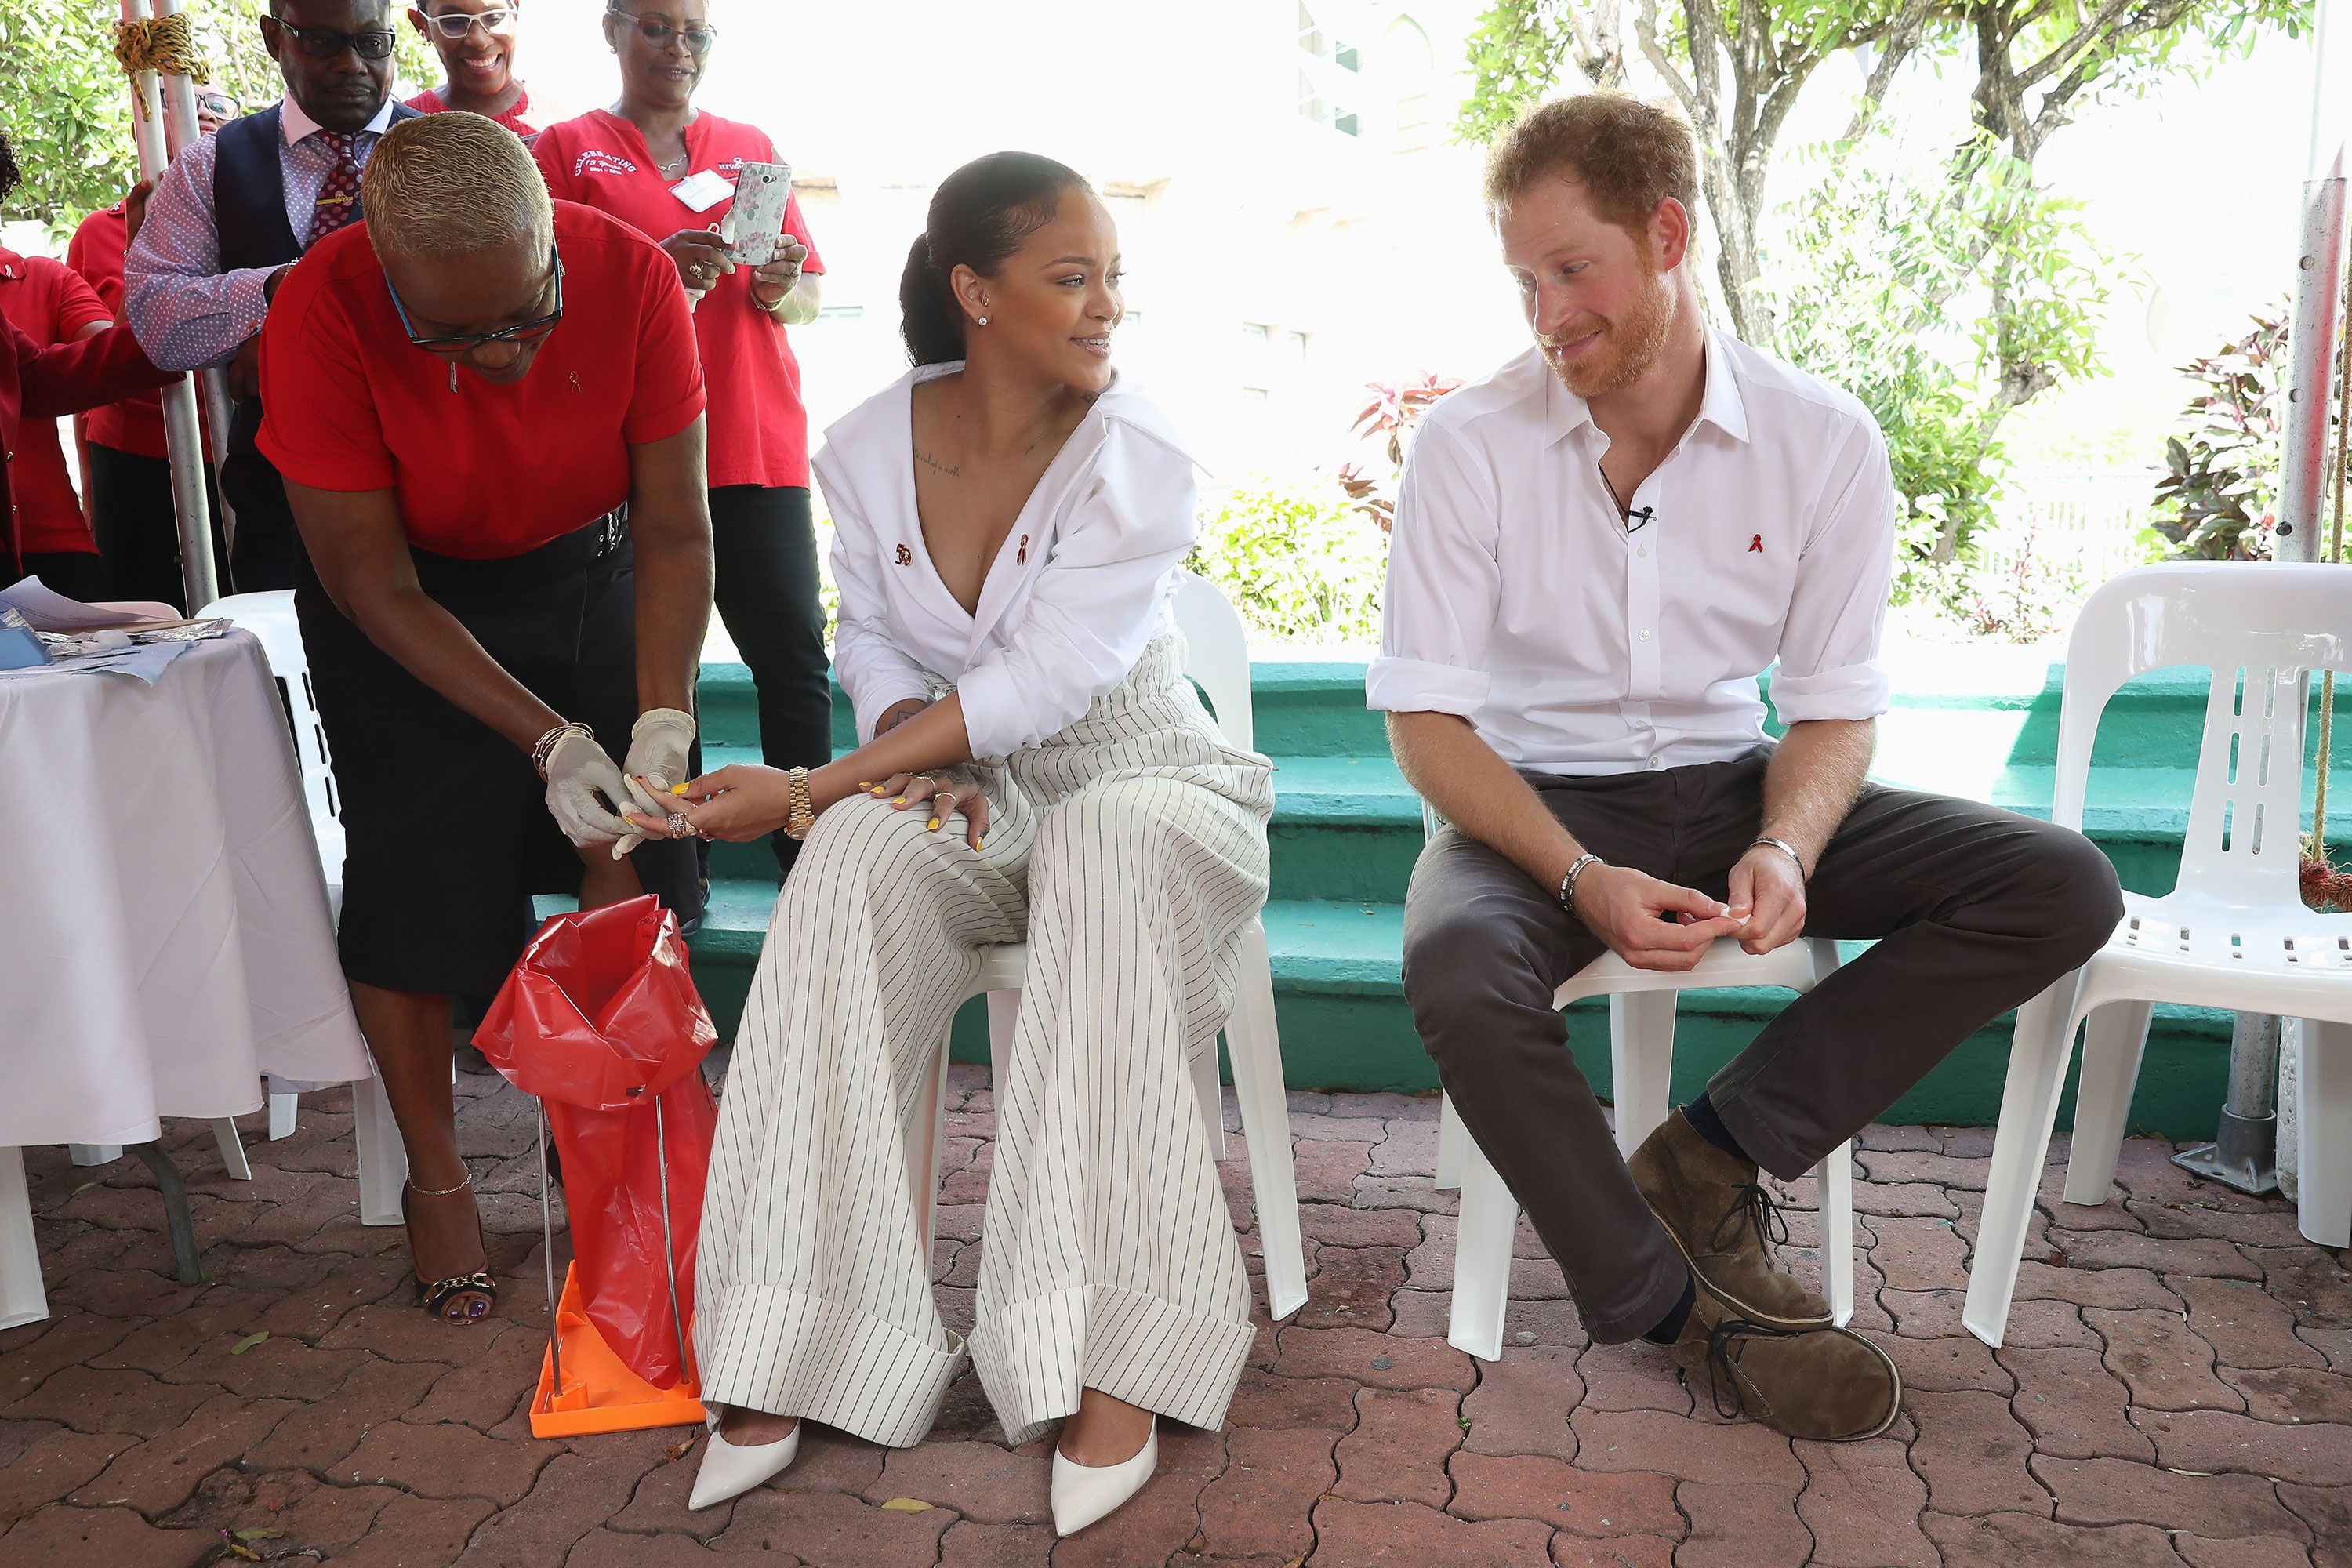 Rihanna and Prince Harry in Barbados